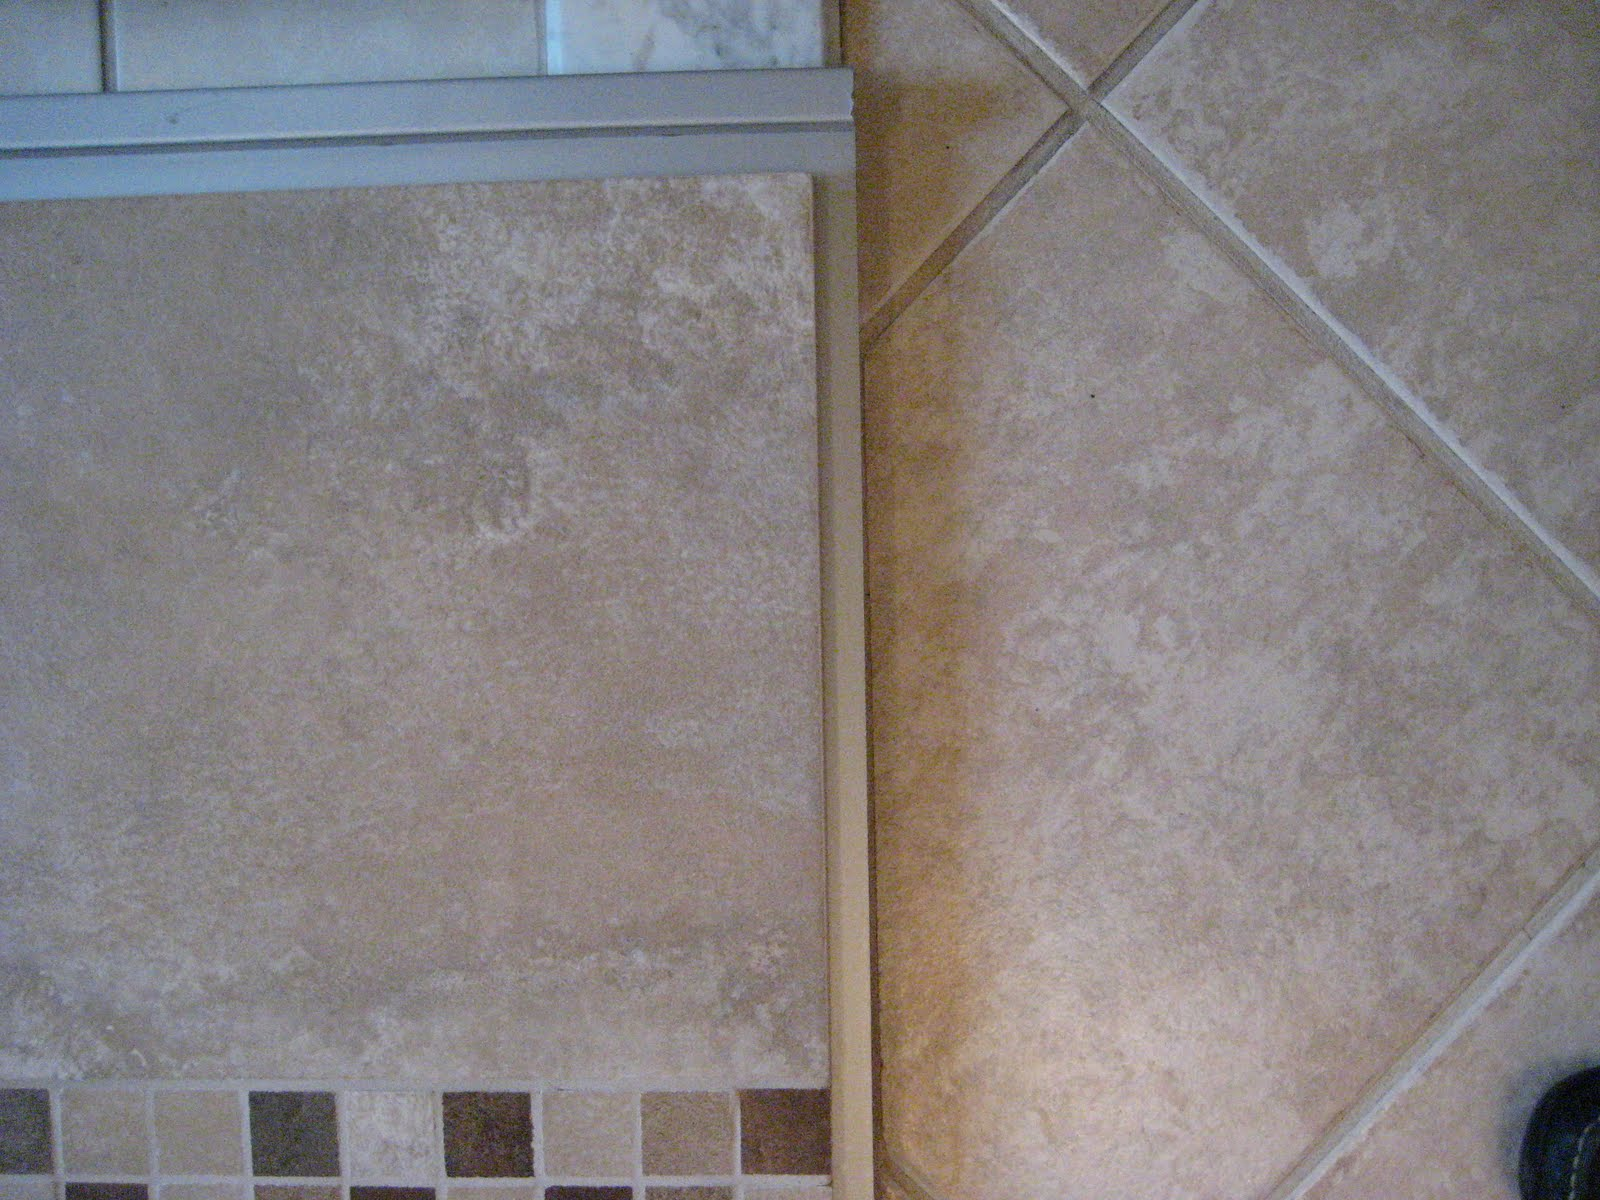 Comparing Floor Tiles for bathroom renovation